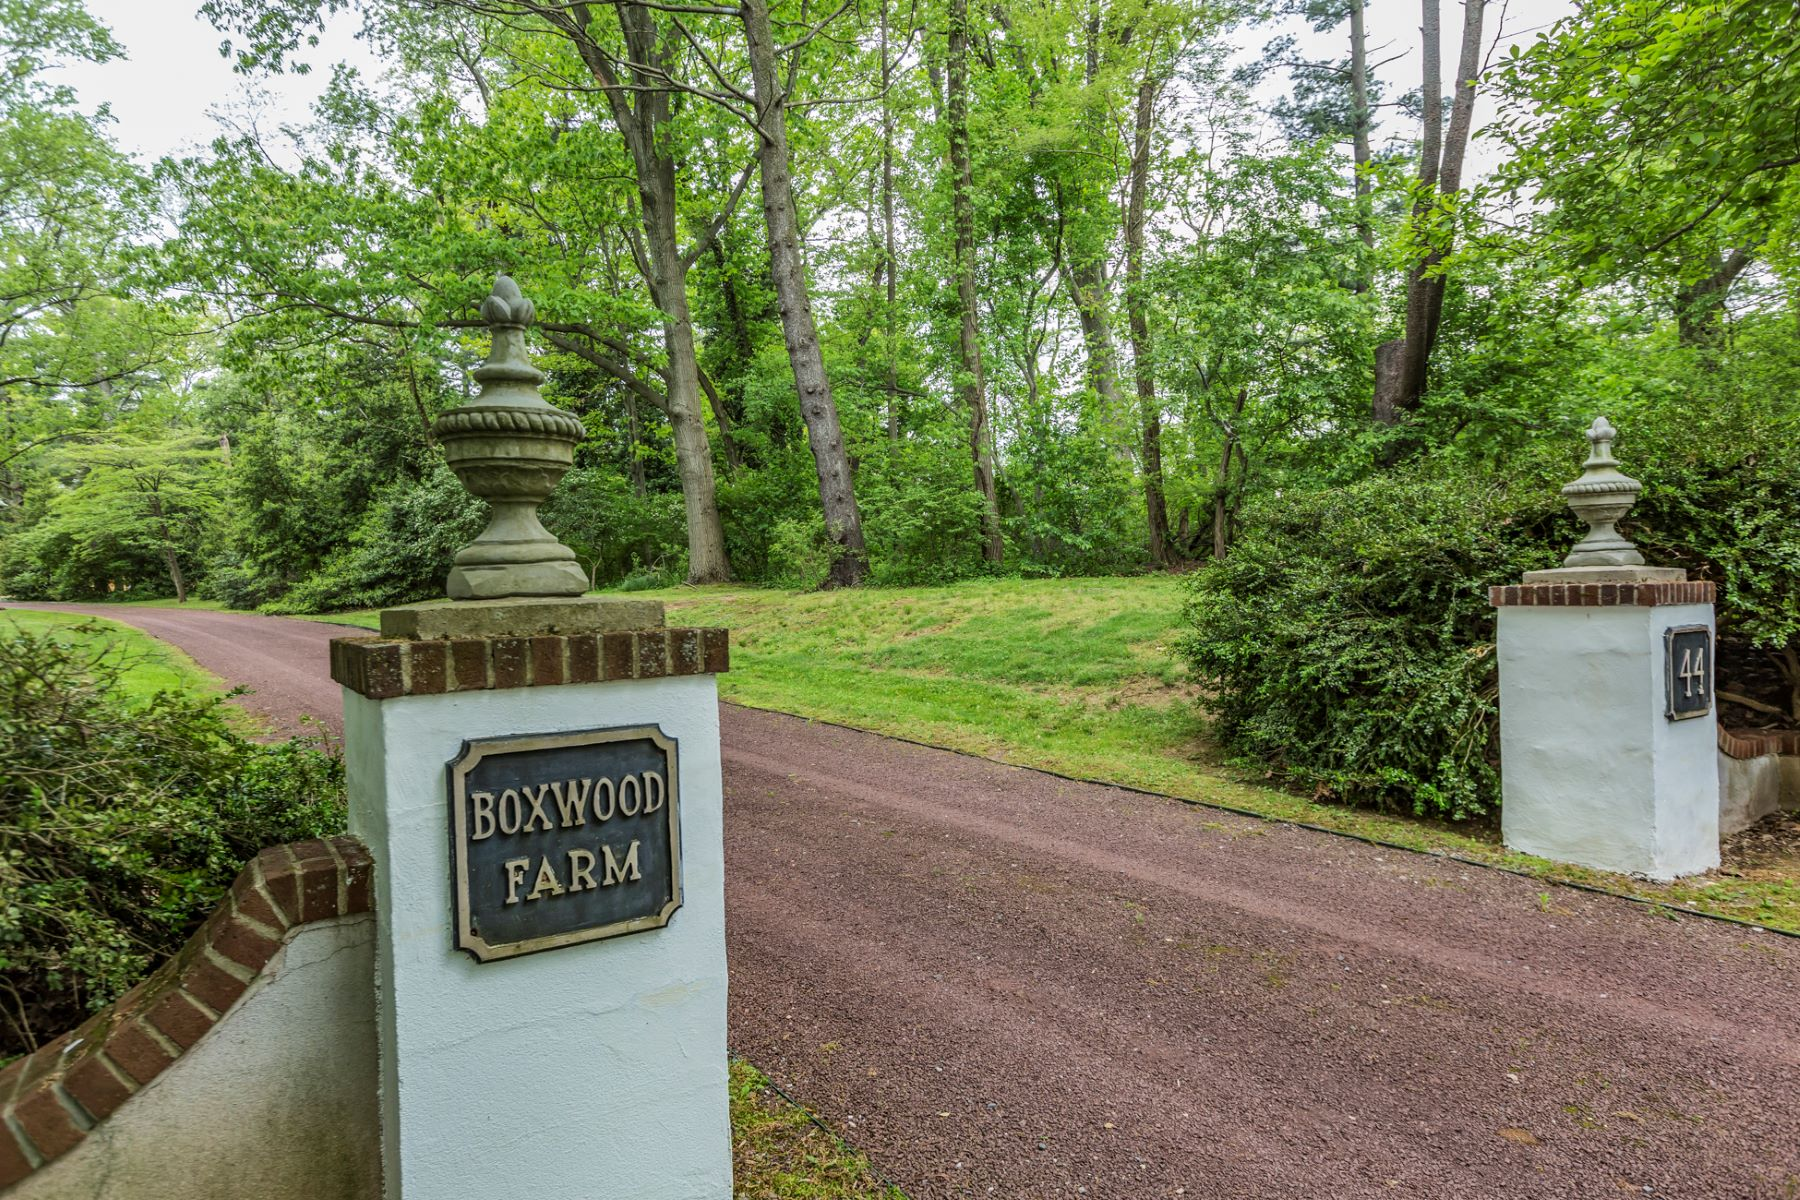 Additional photo for property listing at Serene Boxwood Farm - Lawrence Township 44 Fackler Road 普林斯顿, 新泽西州 08540 美国